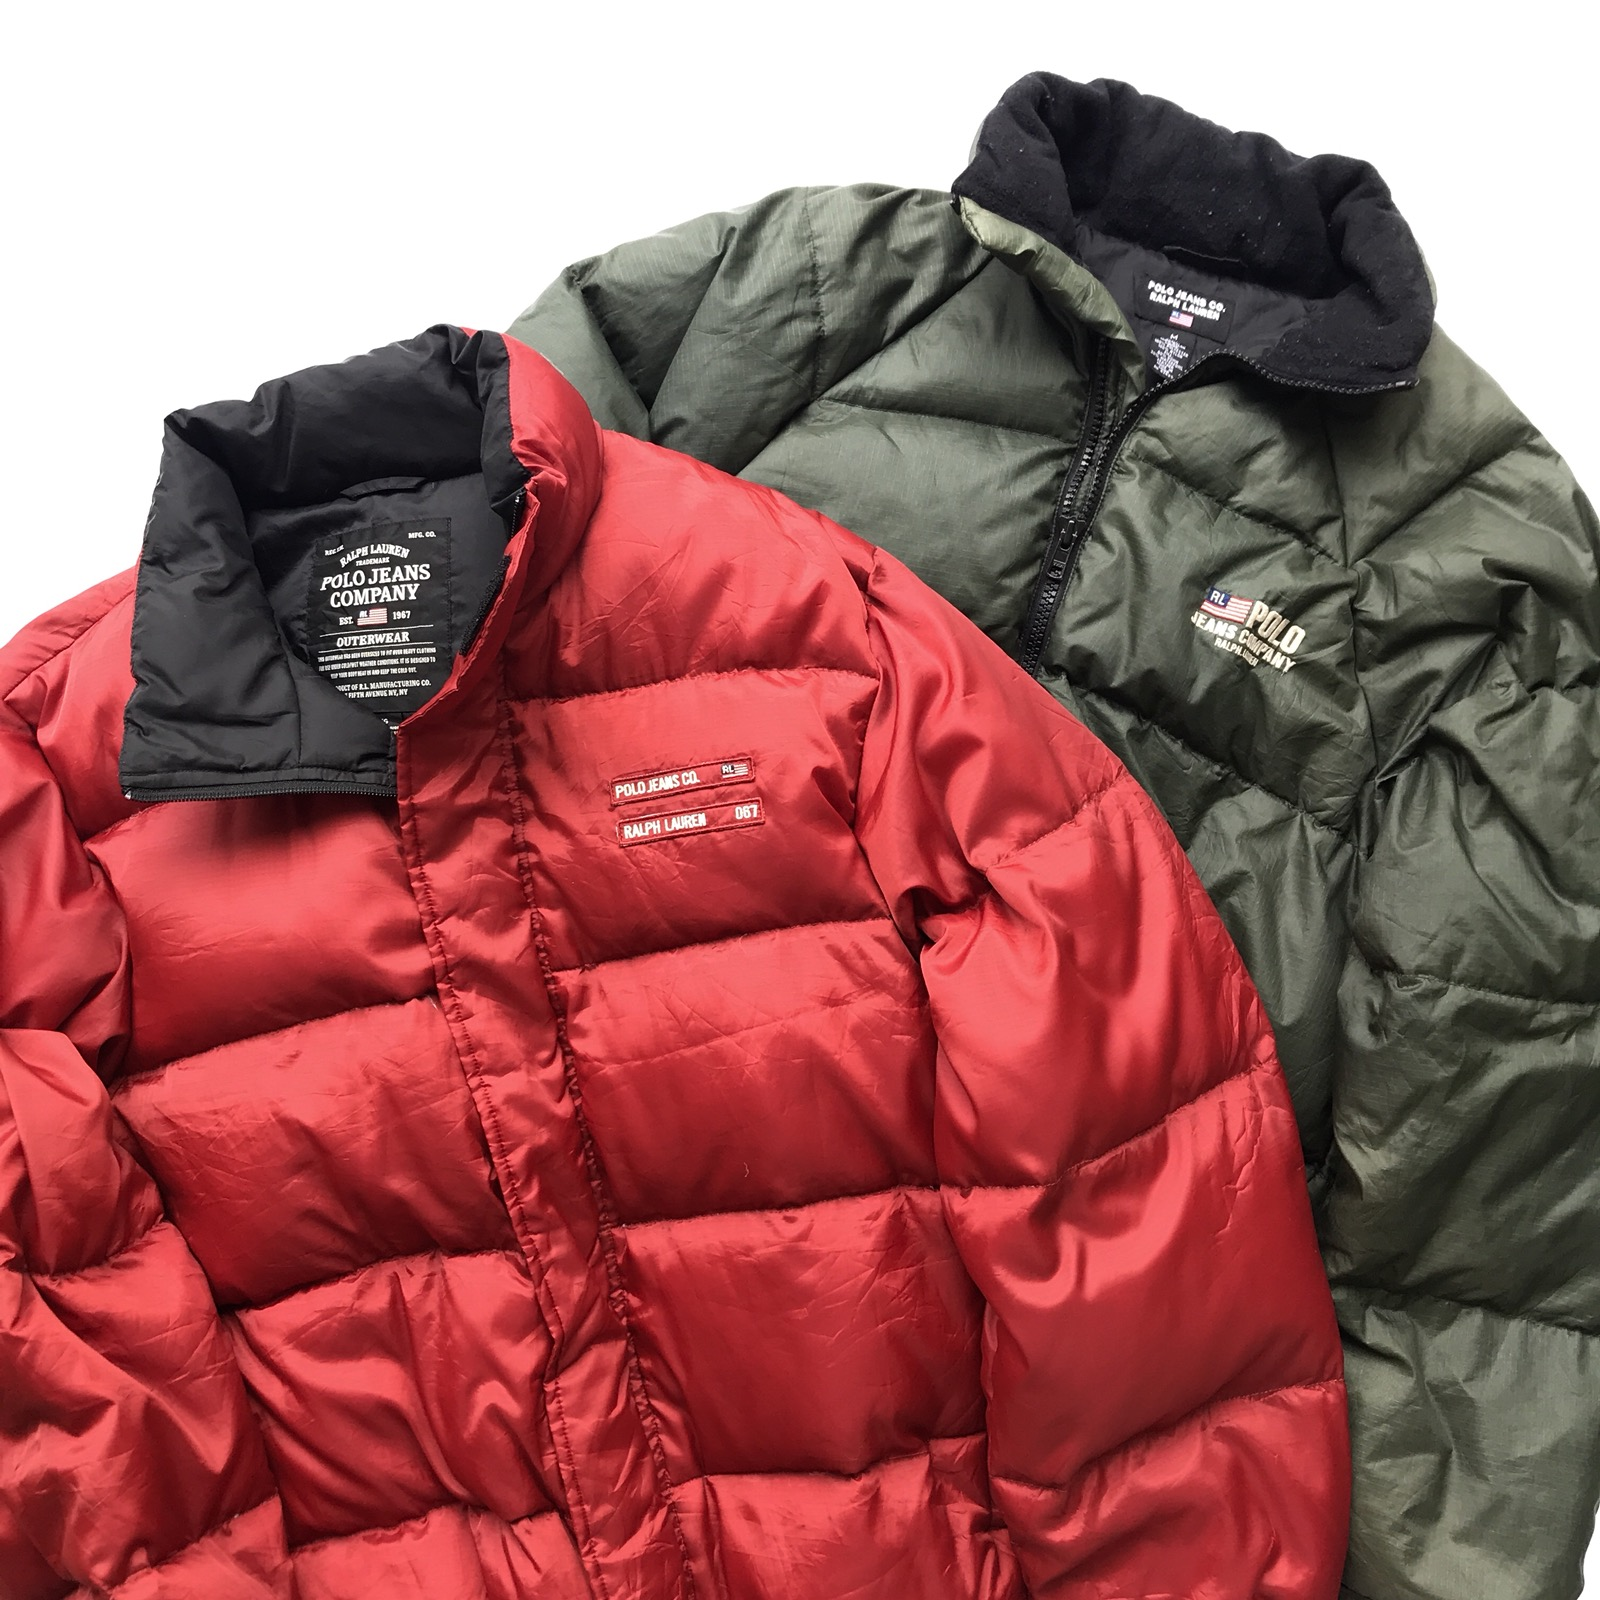 9286447a0 Get 2 Vintage Polo Jeans Company Ralph Lauren Puffer / Puffa / Goose Down  Jacket not moncler the north face tommy hilfiger